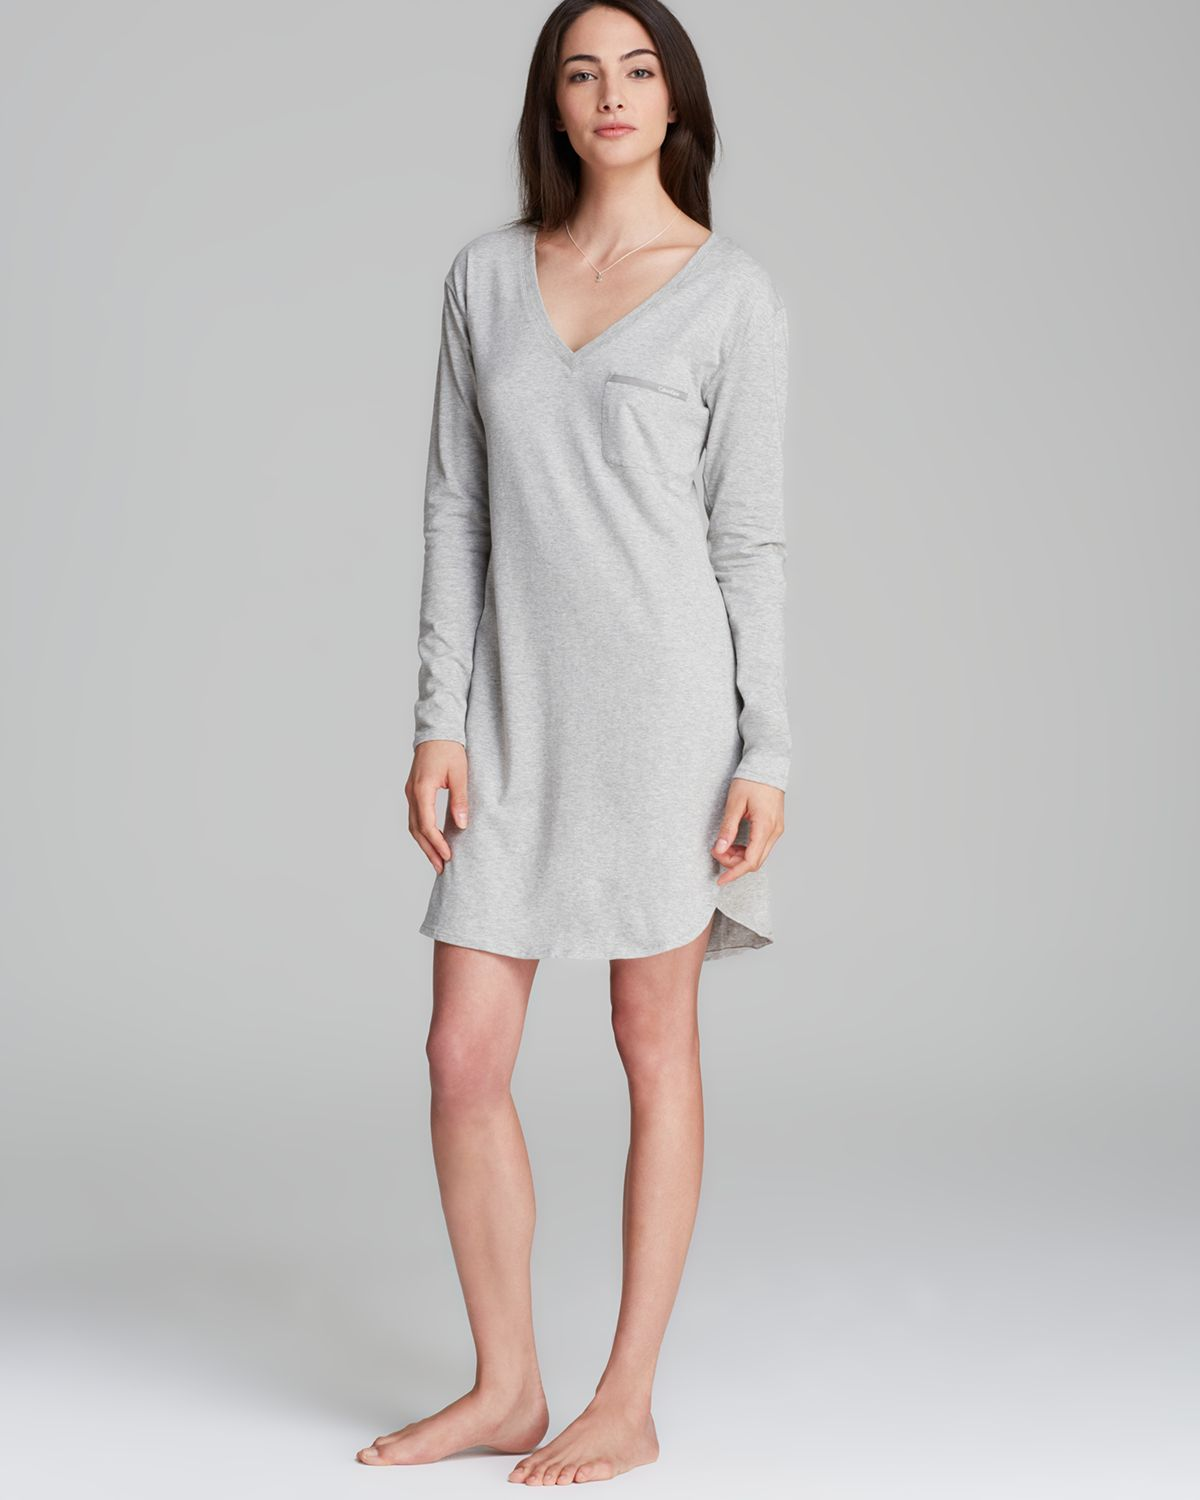 Lyst - Calvin Klein Long Sleeve Cotton Nightgown in Gray